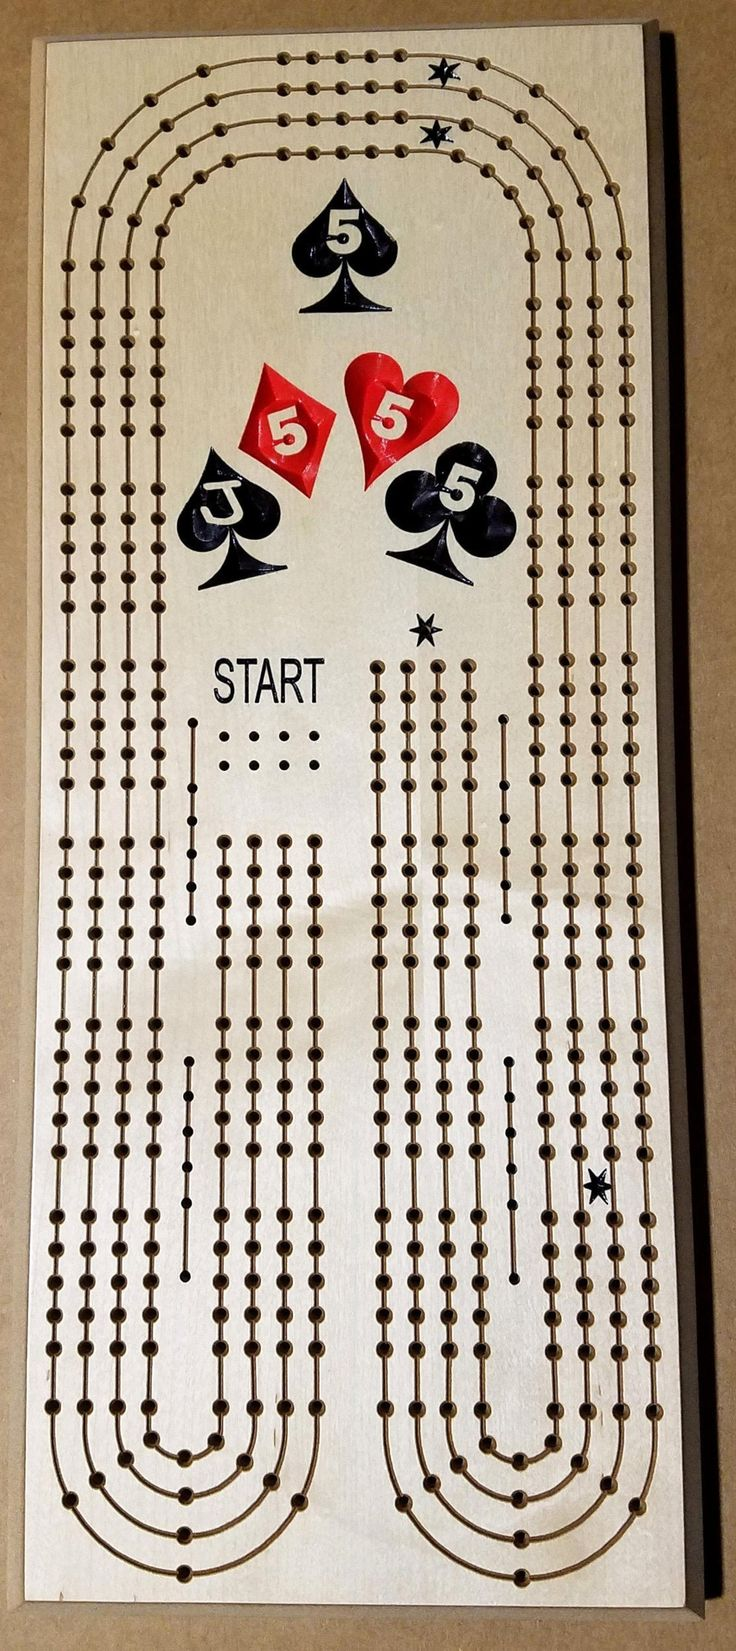 2 3 or 4 person perfect hand cribbage board  etsy in 2020